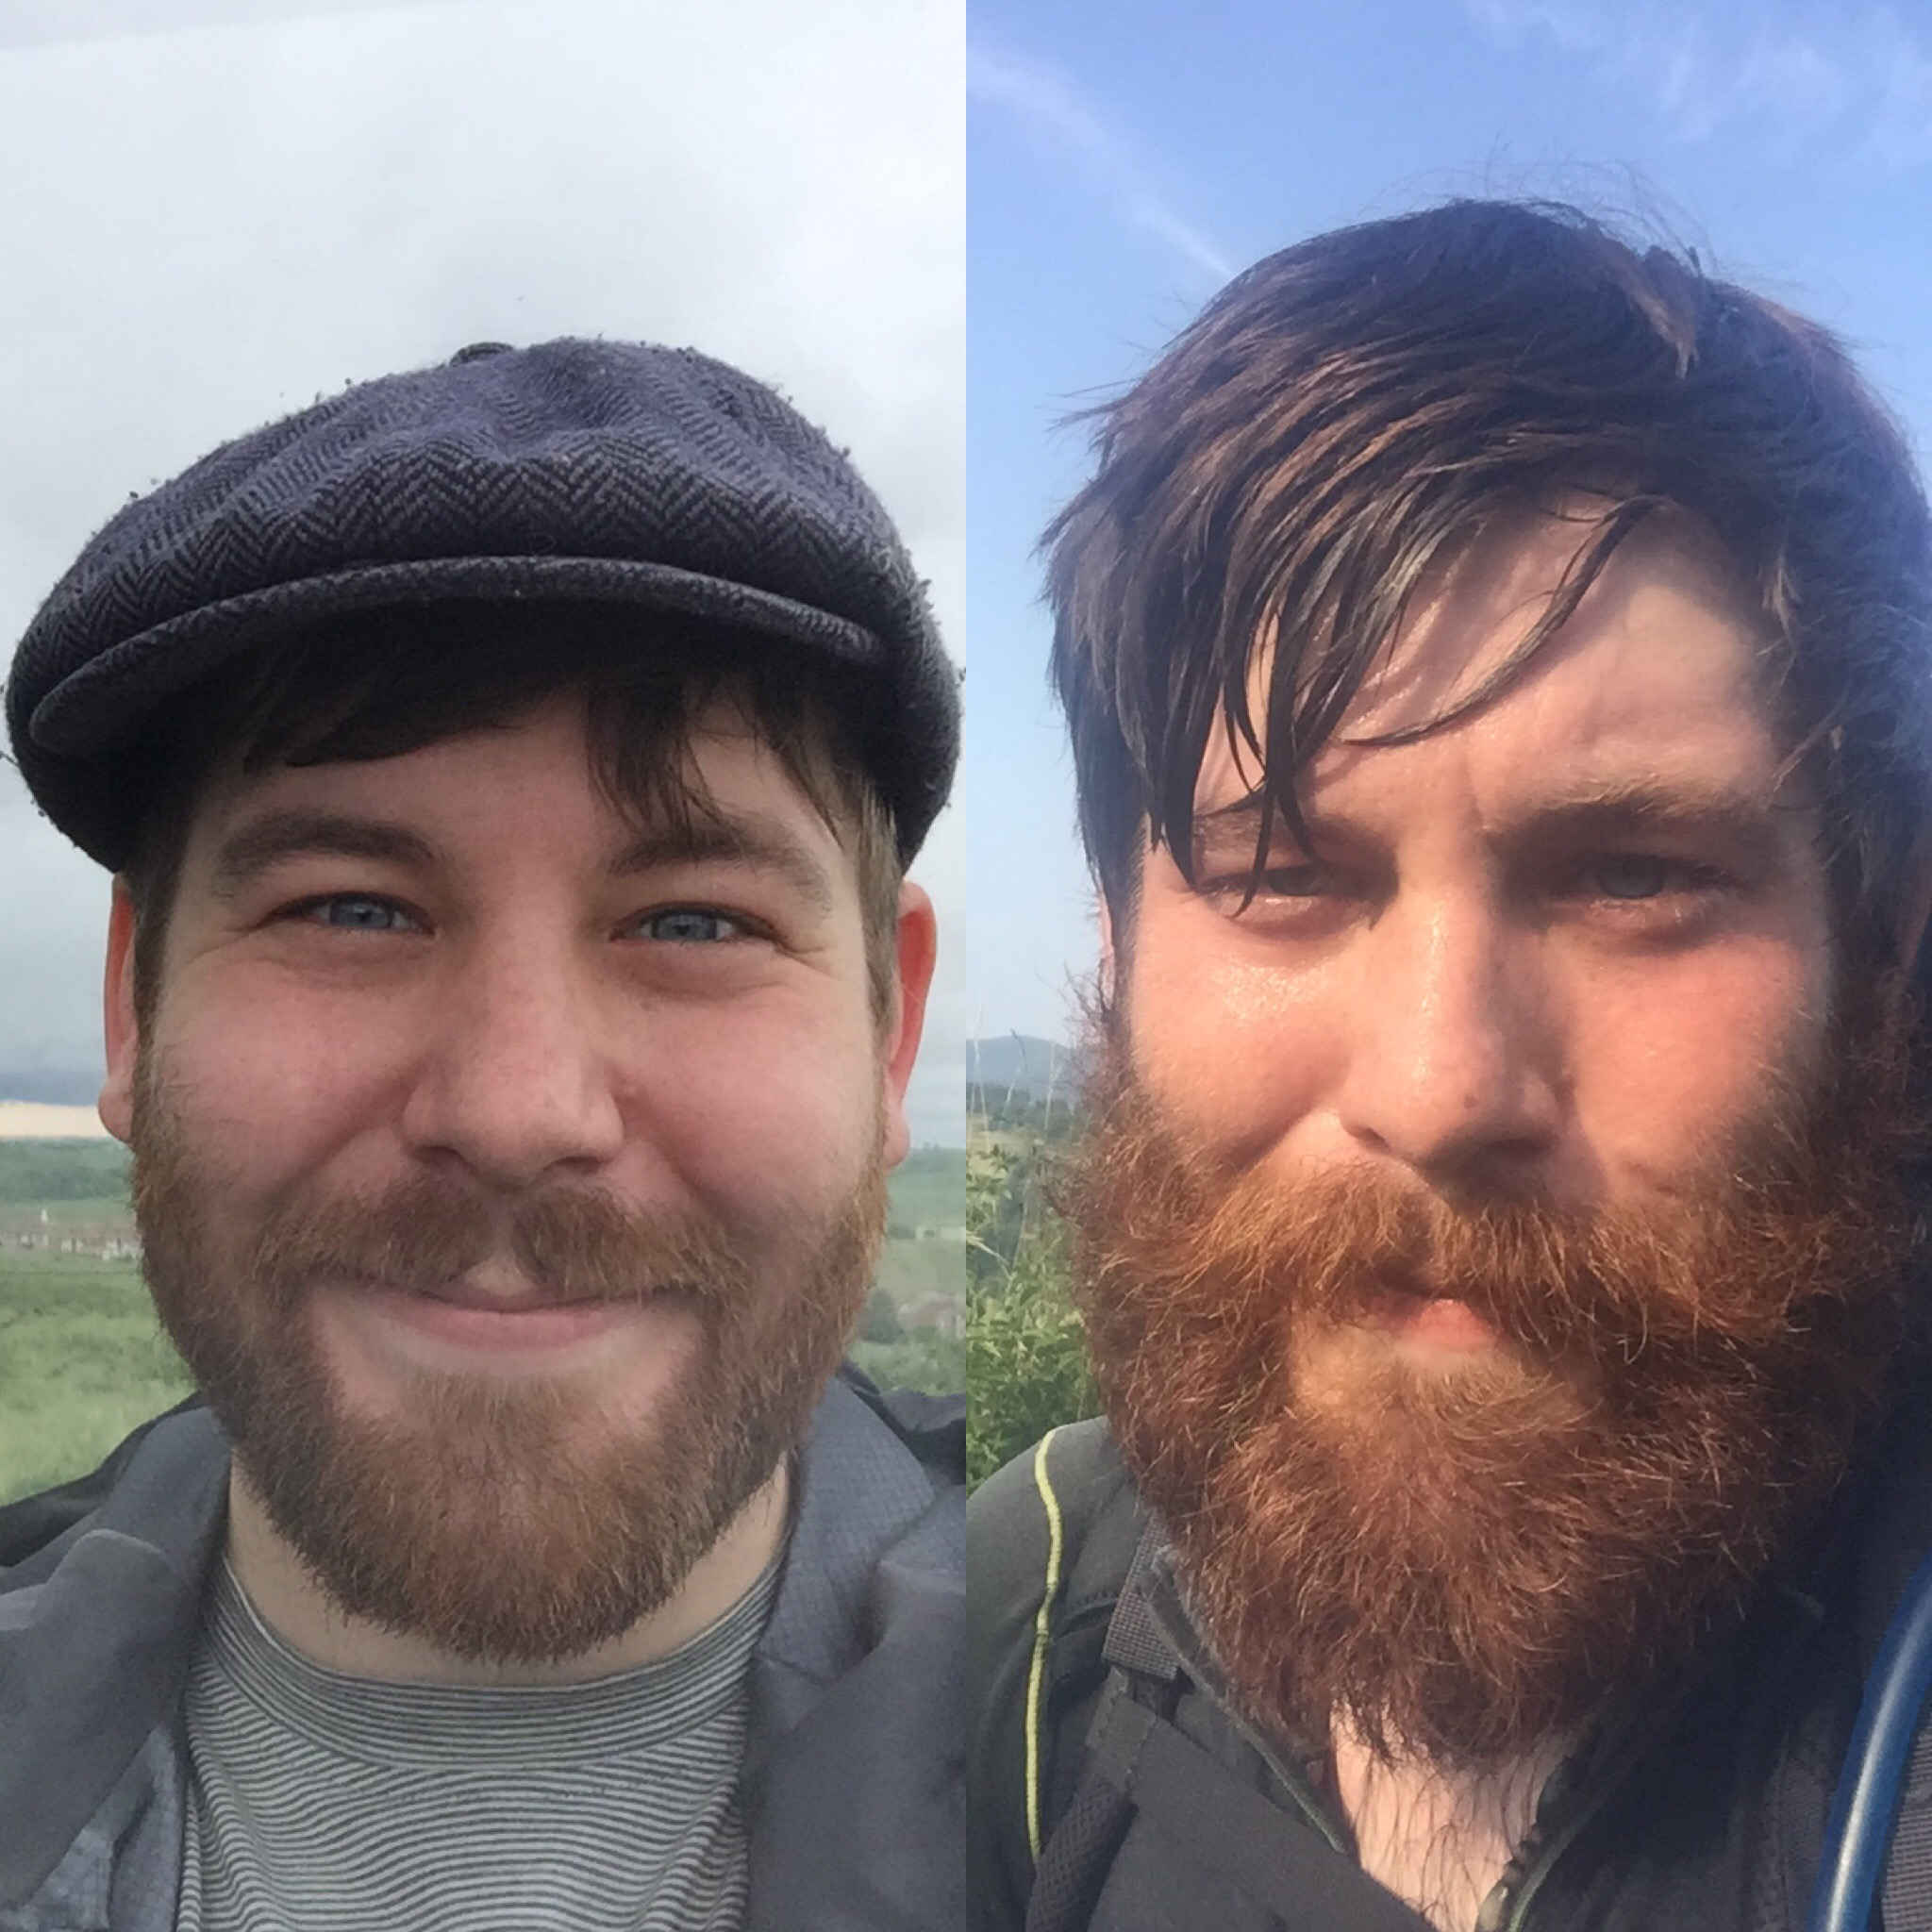 It's amazing what three months of walking will do to a person.